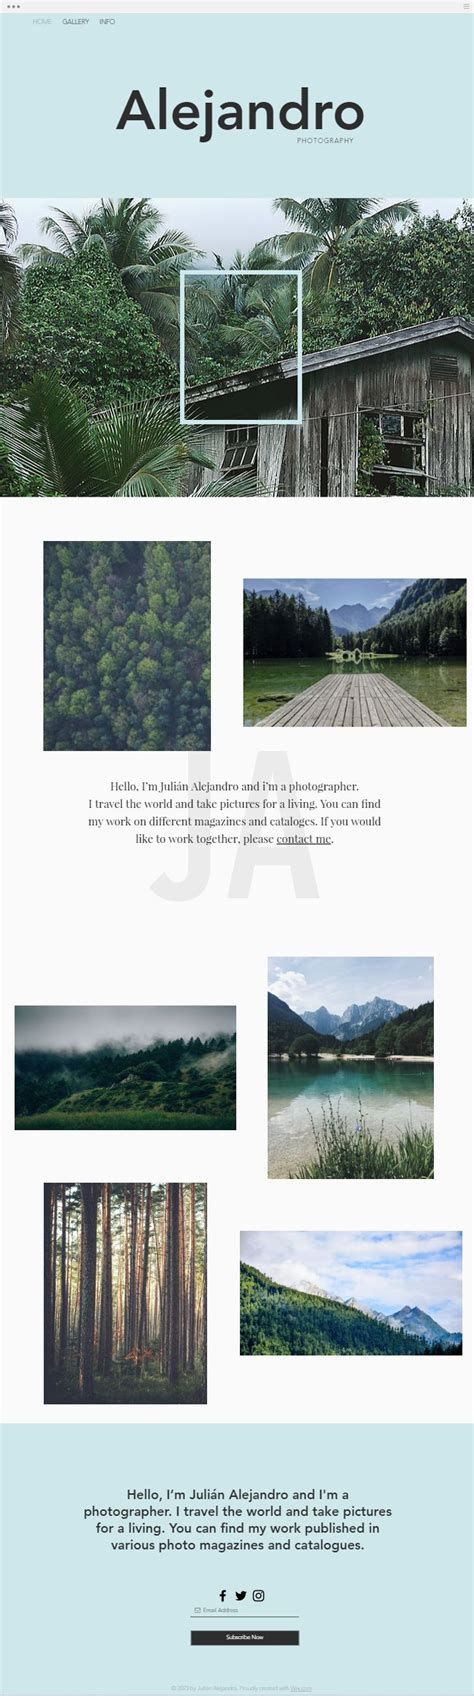 1000 Images About Wix Website Templates On Pinterest Website Template Html Templates And Wix Portfolio Templates